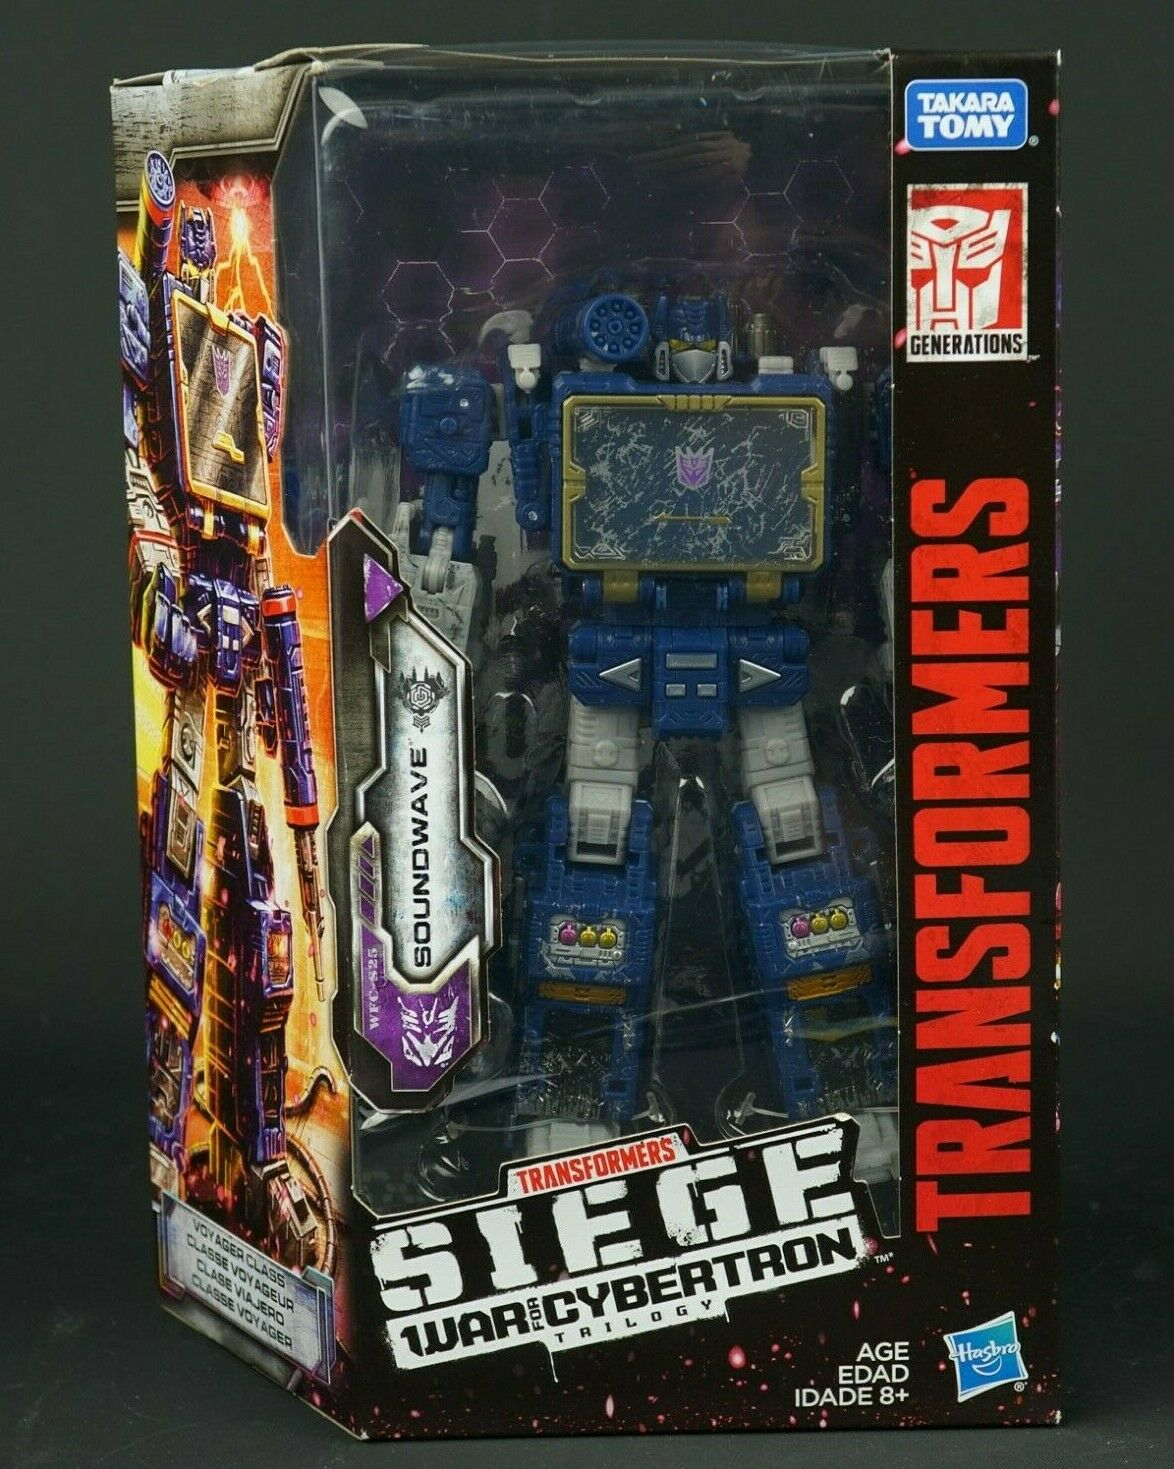 Transformers Hasbro WAR for Cybertron D'ASSEDIO VOYAGER suonowave NUOVO IN SCATOLA SIGILLATA